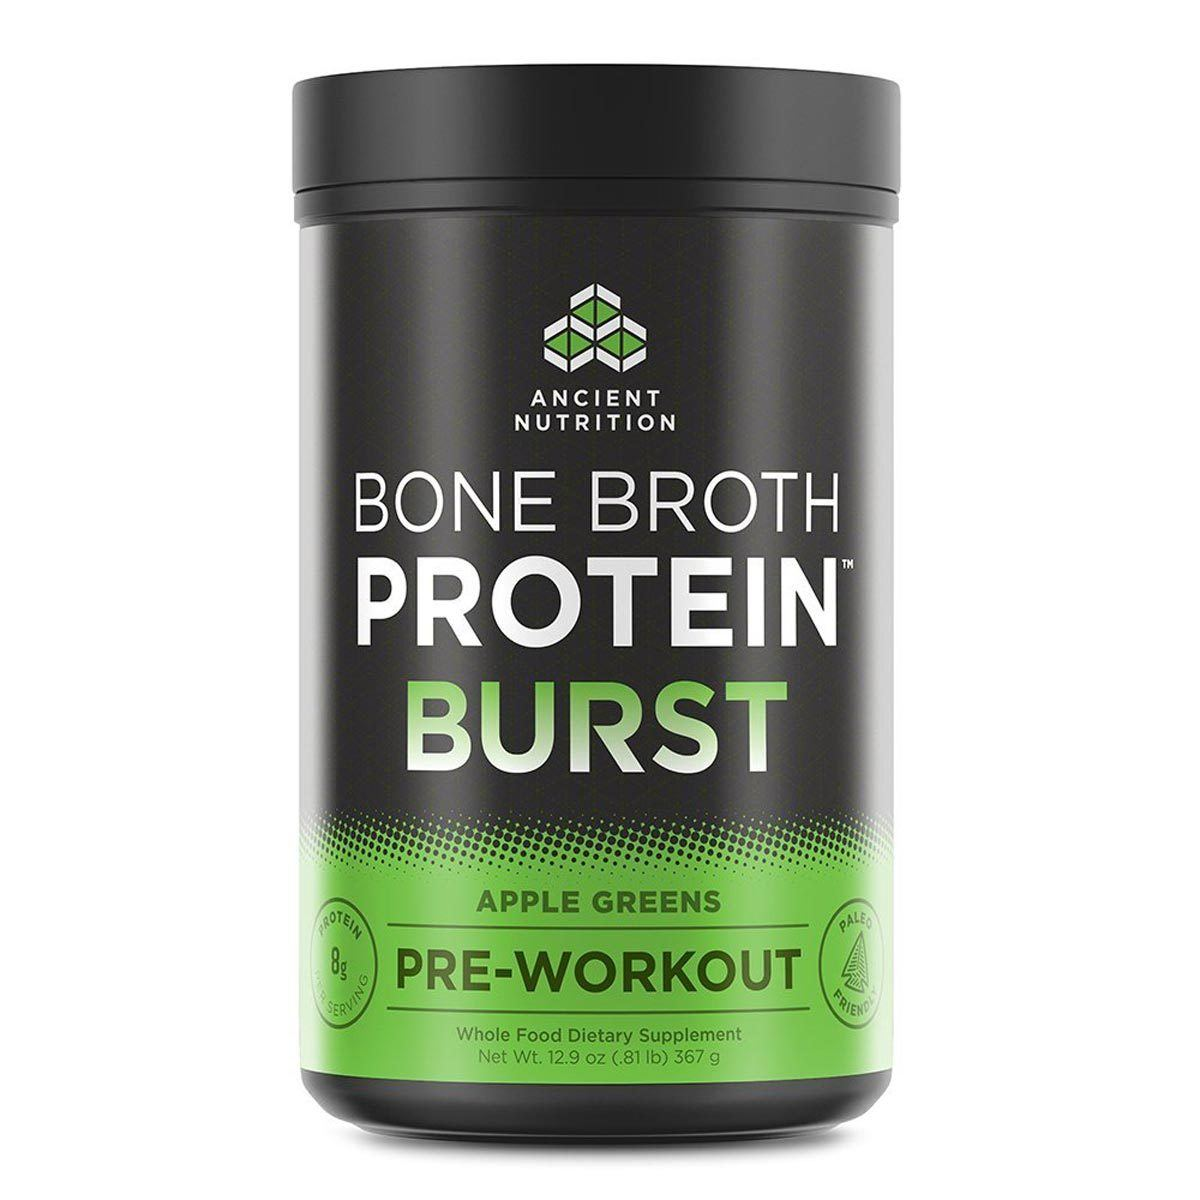 Ancient Nutrition Bone Broth Protein Burst Pre-Workout Protein Ancient Nutrition Apple  (1059283402795)